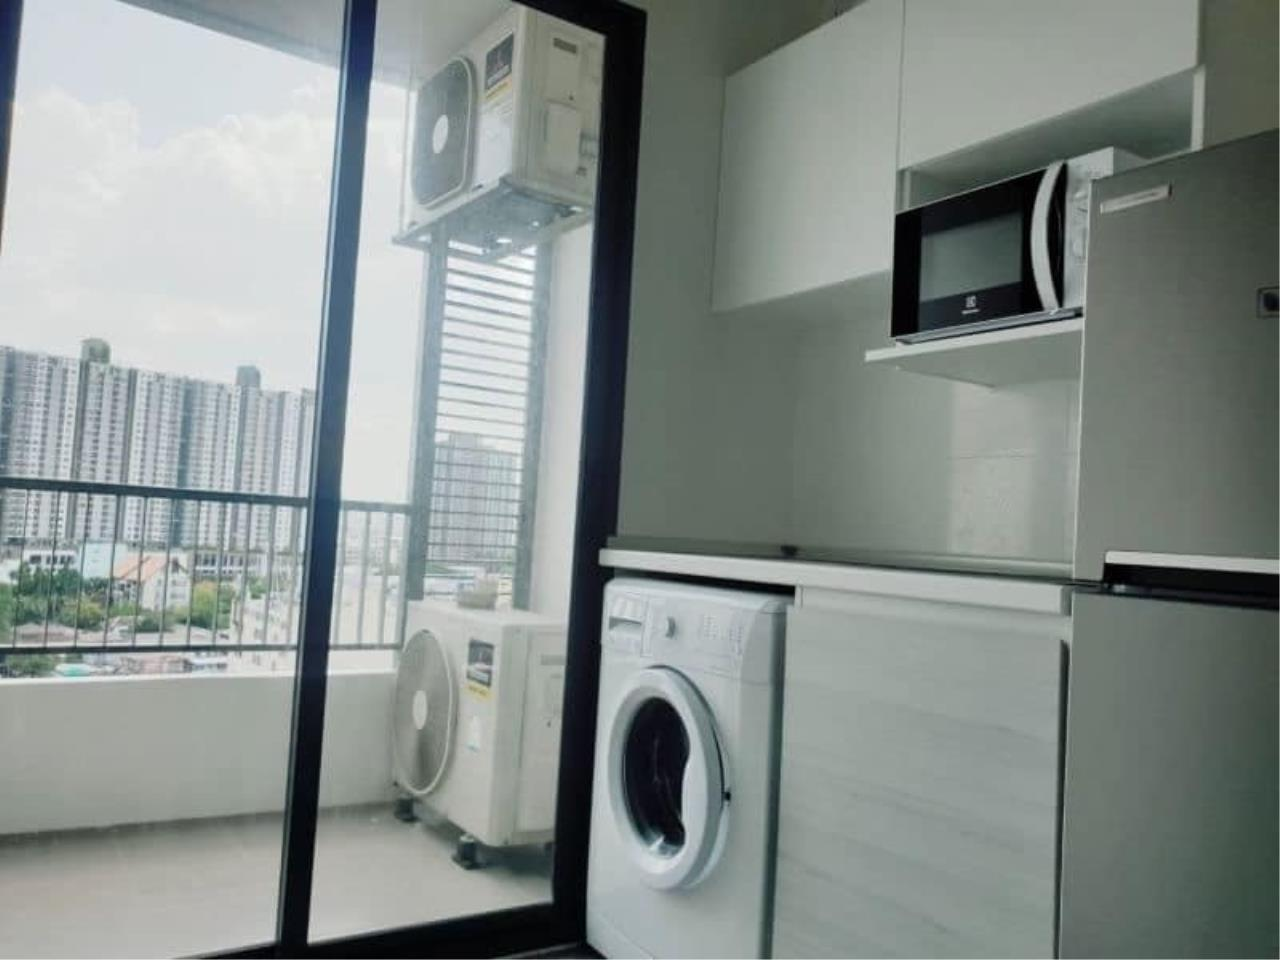 Agent Thawanrat Agency's Condo for rental Metro Sky Bangsue-Prachachuen Near BTS.Bang Son 1 bedroom,1 bathroom. size 36 sqm.Floor 12 th. fully furnished Ready to move in 2